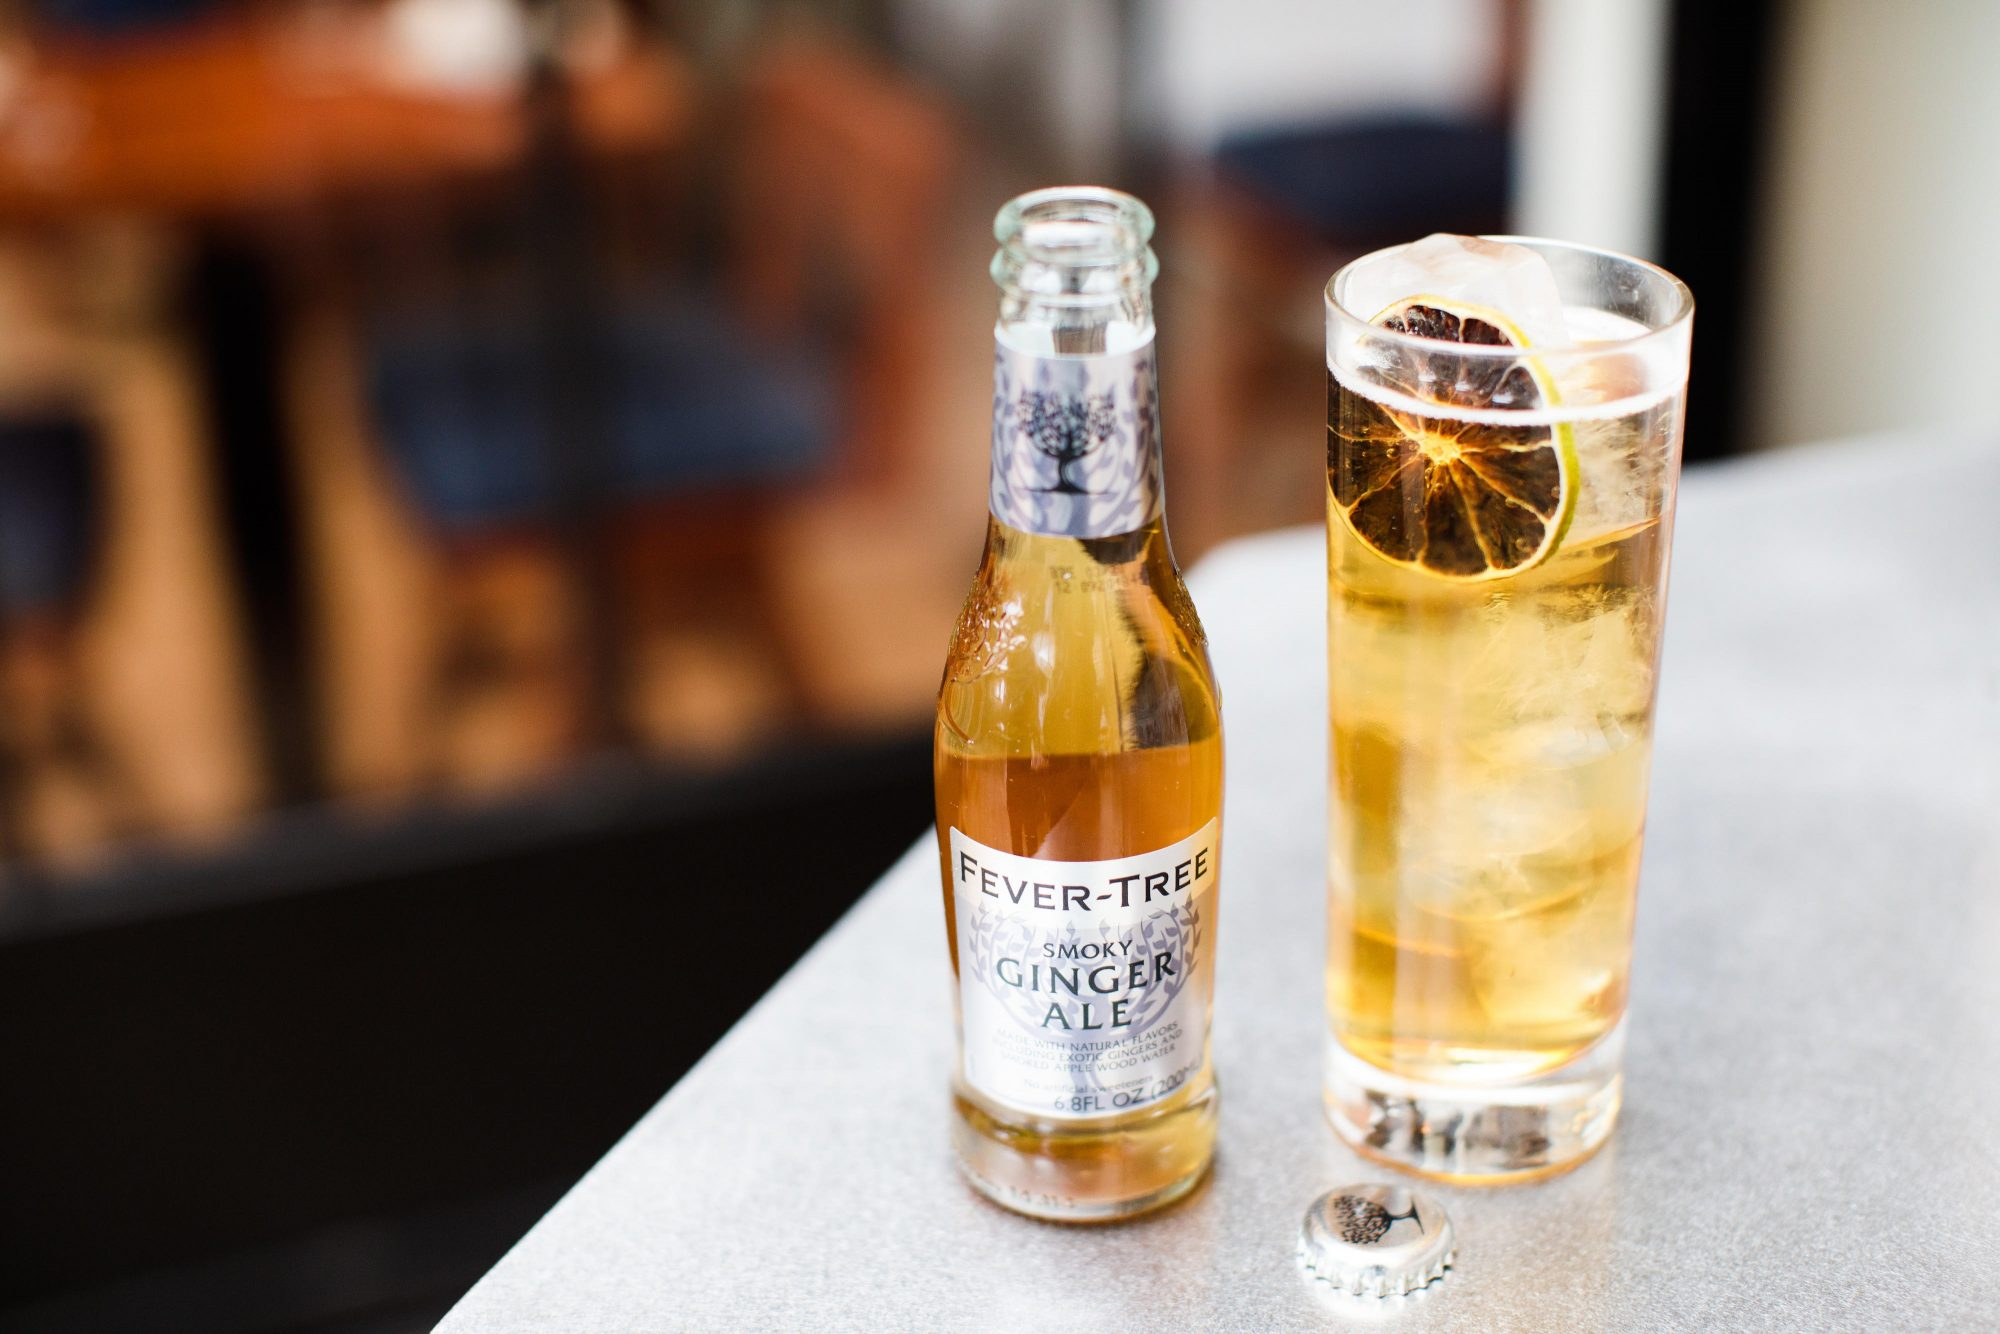 Smoky-Ginger-Ale-LCR-FT-BLOG07012019.jpg